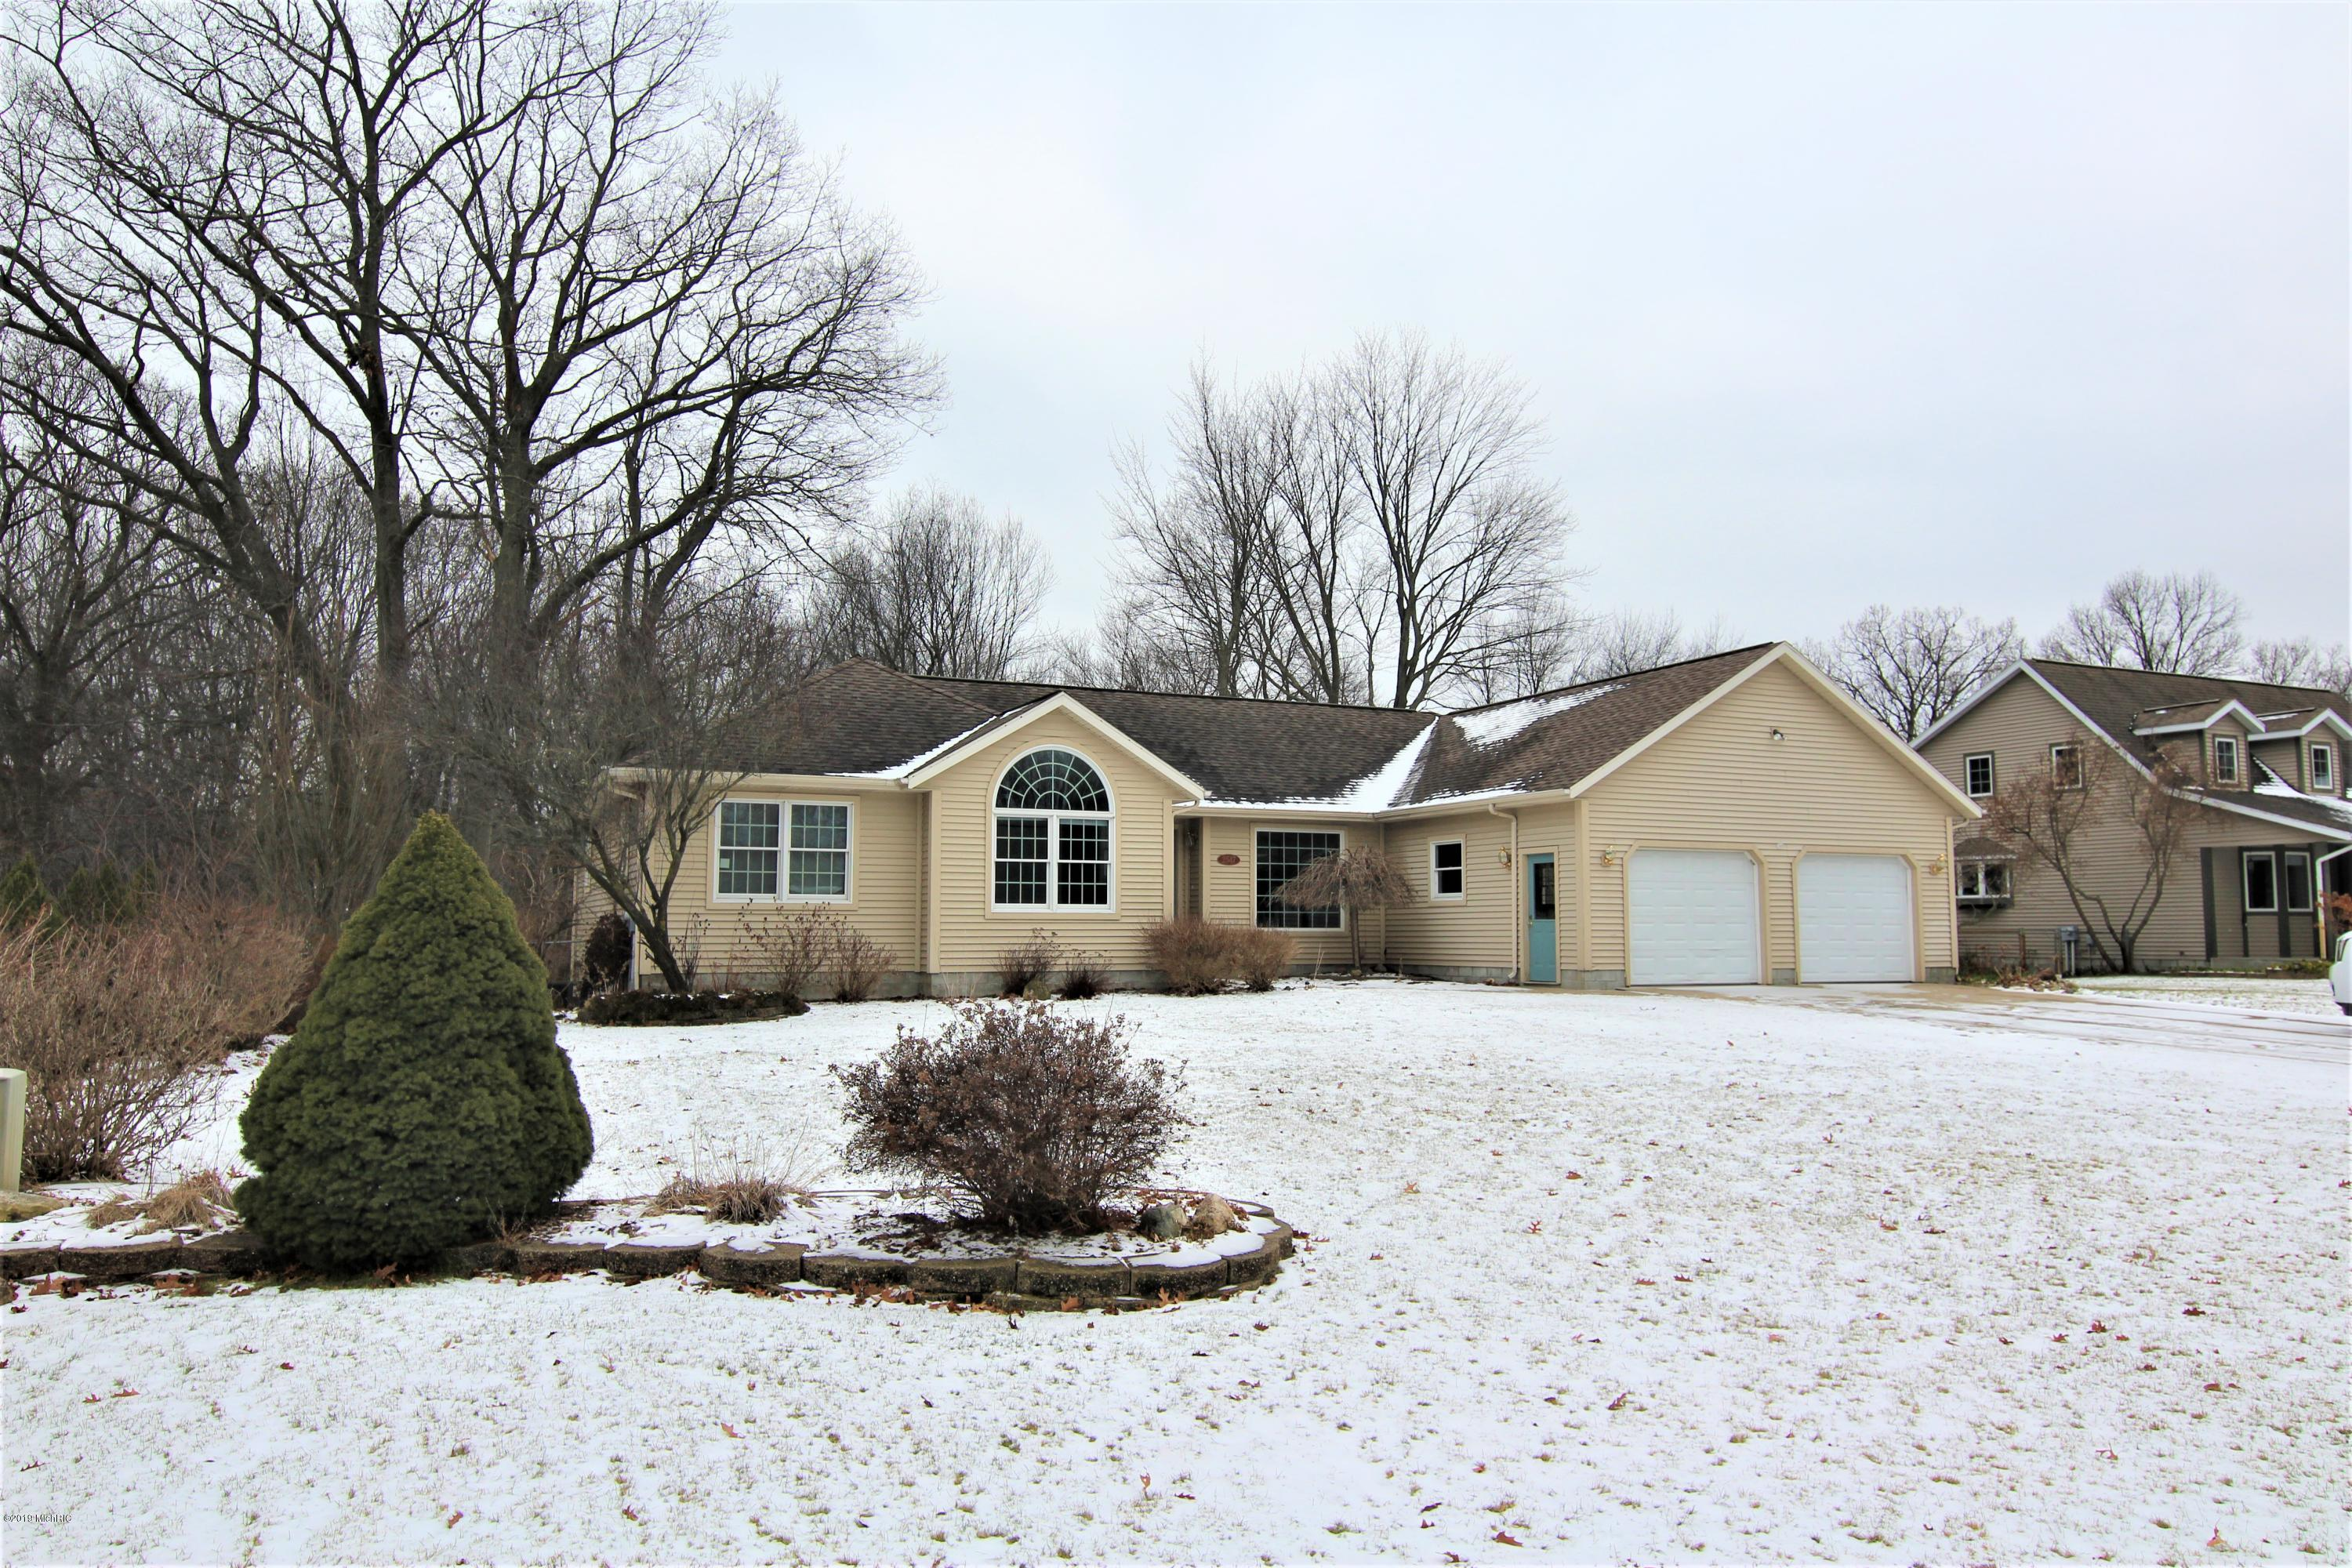 2547 Cathevey Lane, Muskegon, MI 49444